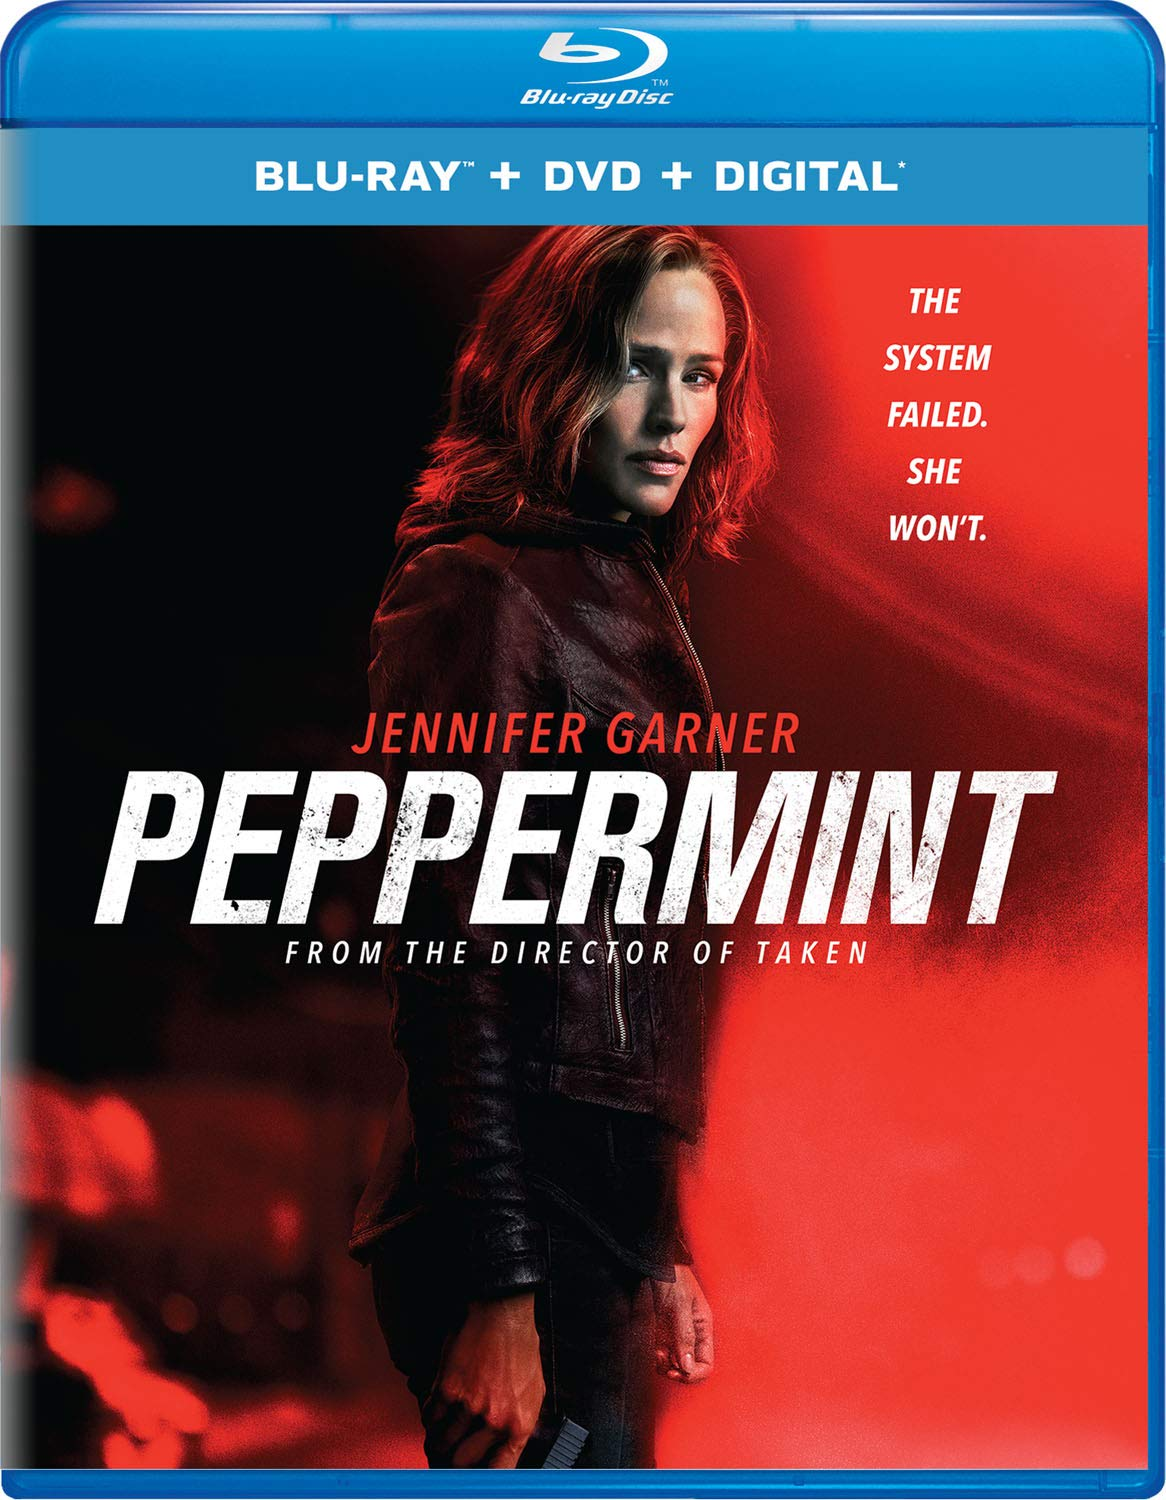 Blu-ray : Peppermint (With DVD, 2 Pack, Digital Copy)